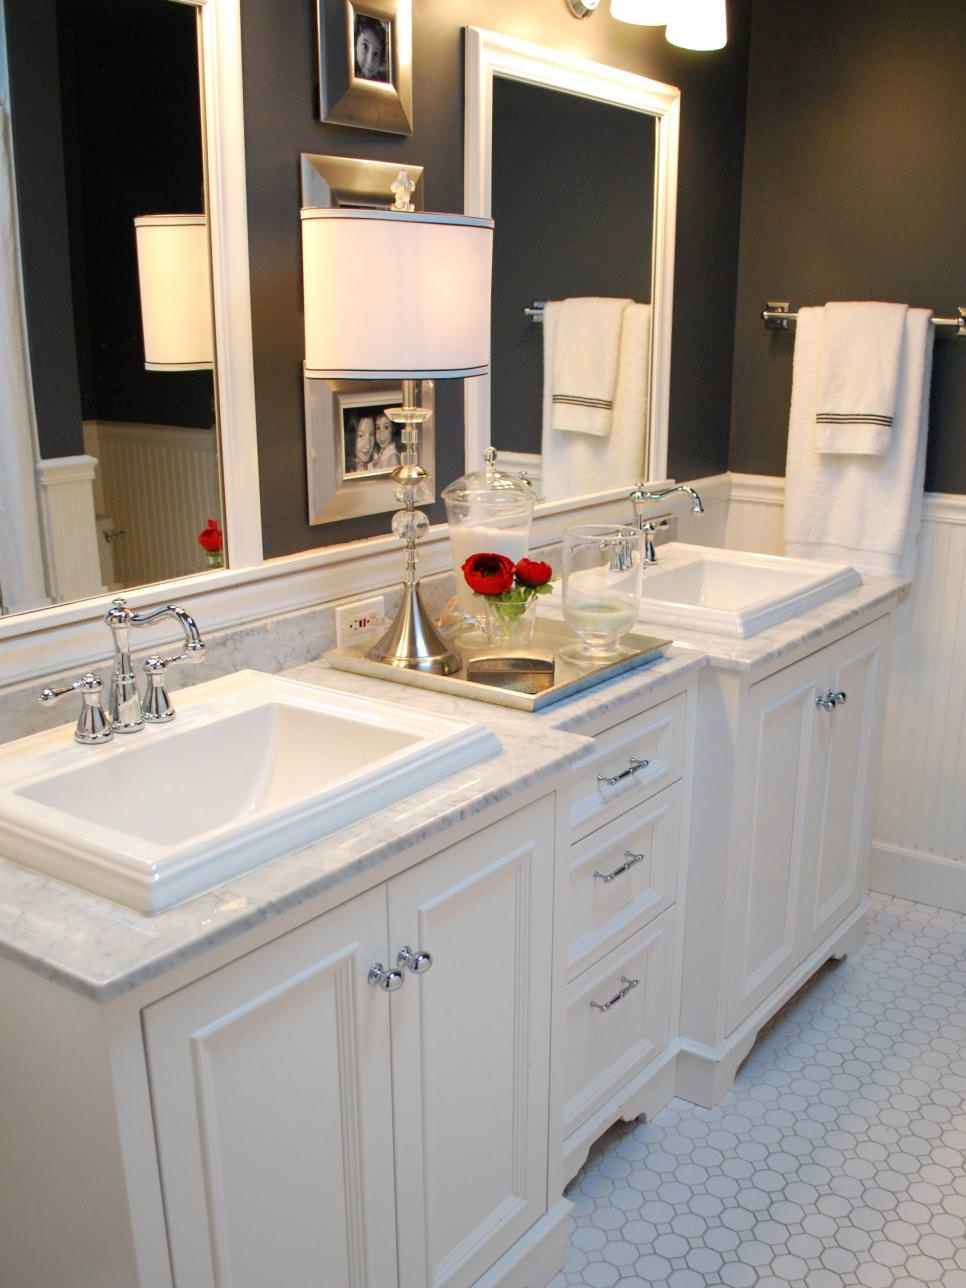 Bathroom Cabinets Designs Photos : Double bathroom vanity ideas designs